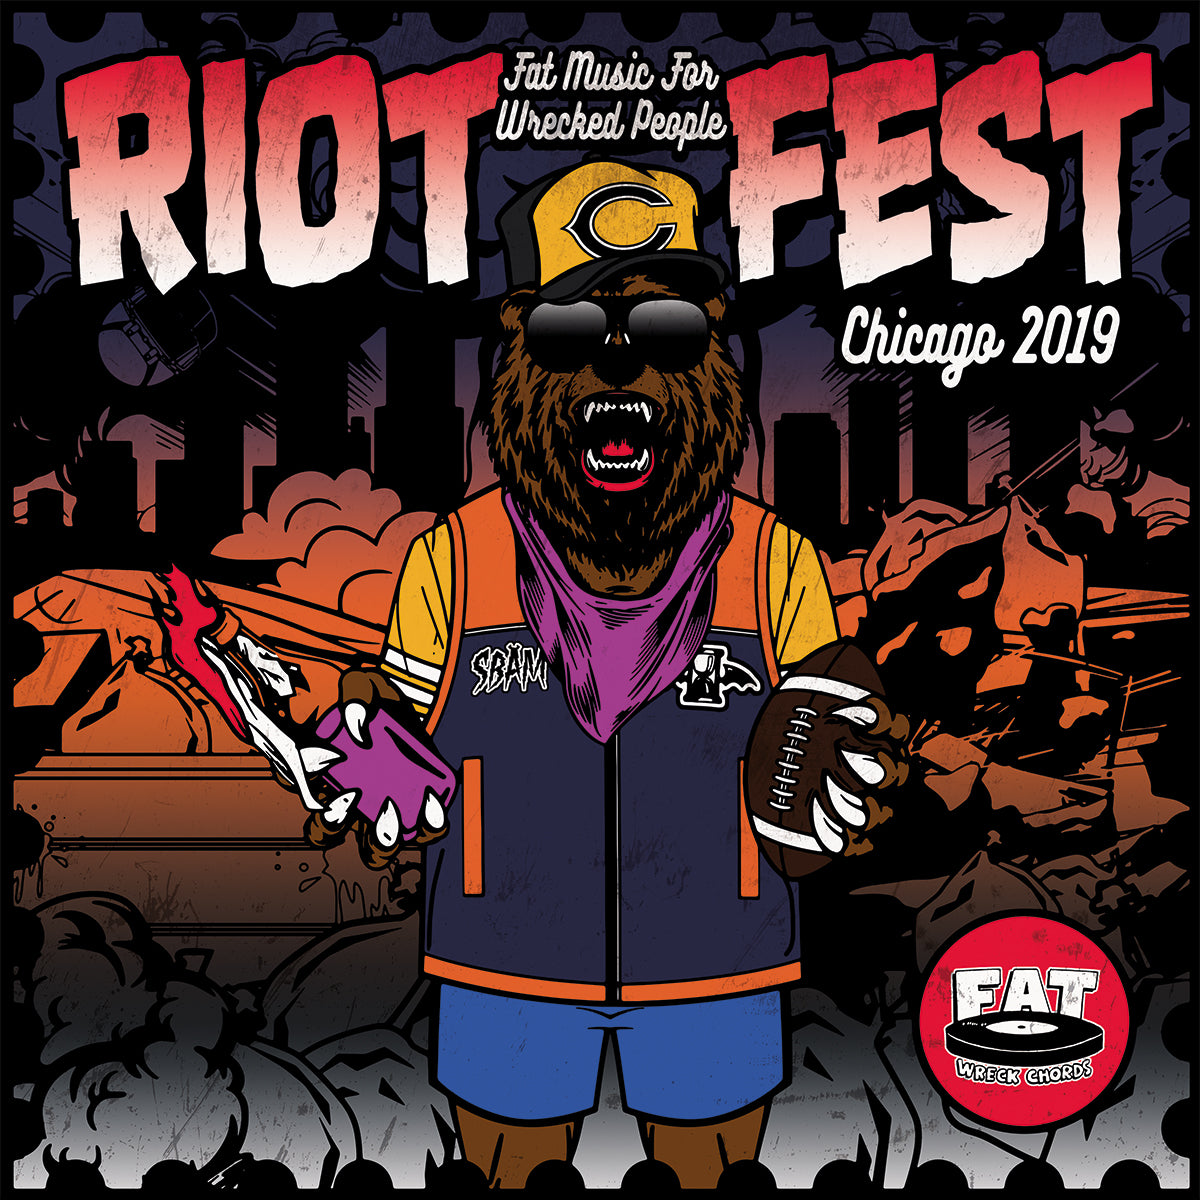 Fat Music For Wrecked People: Riot Fest 2019